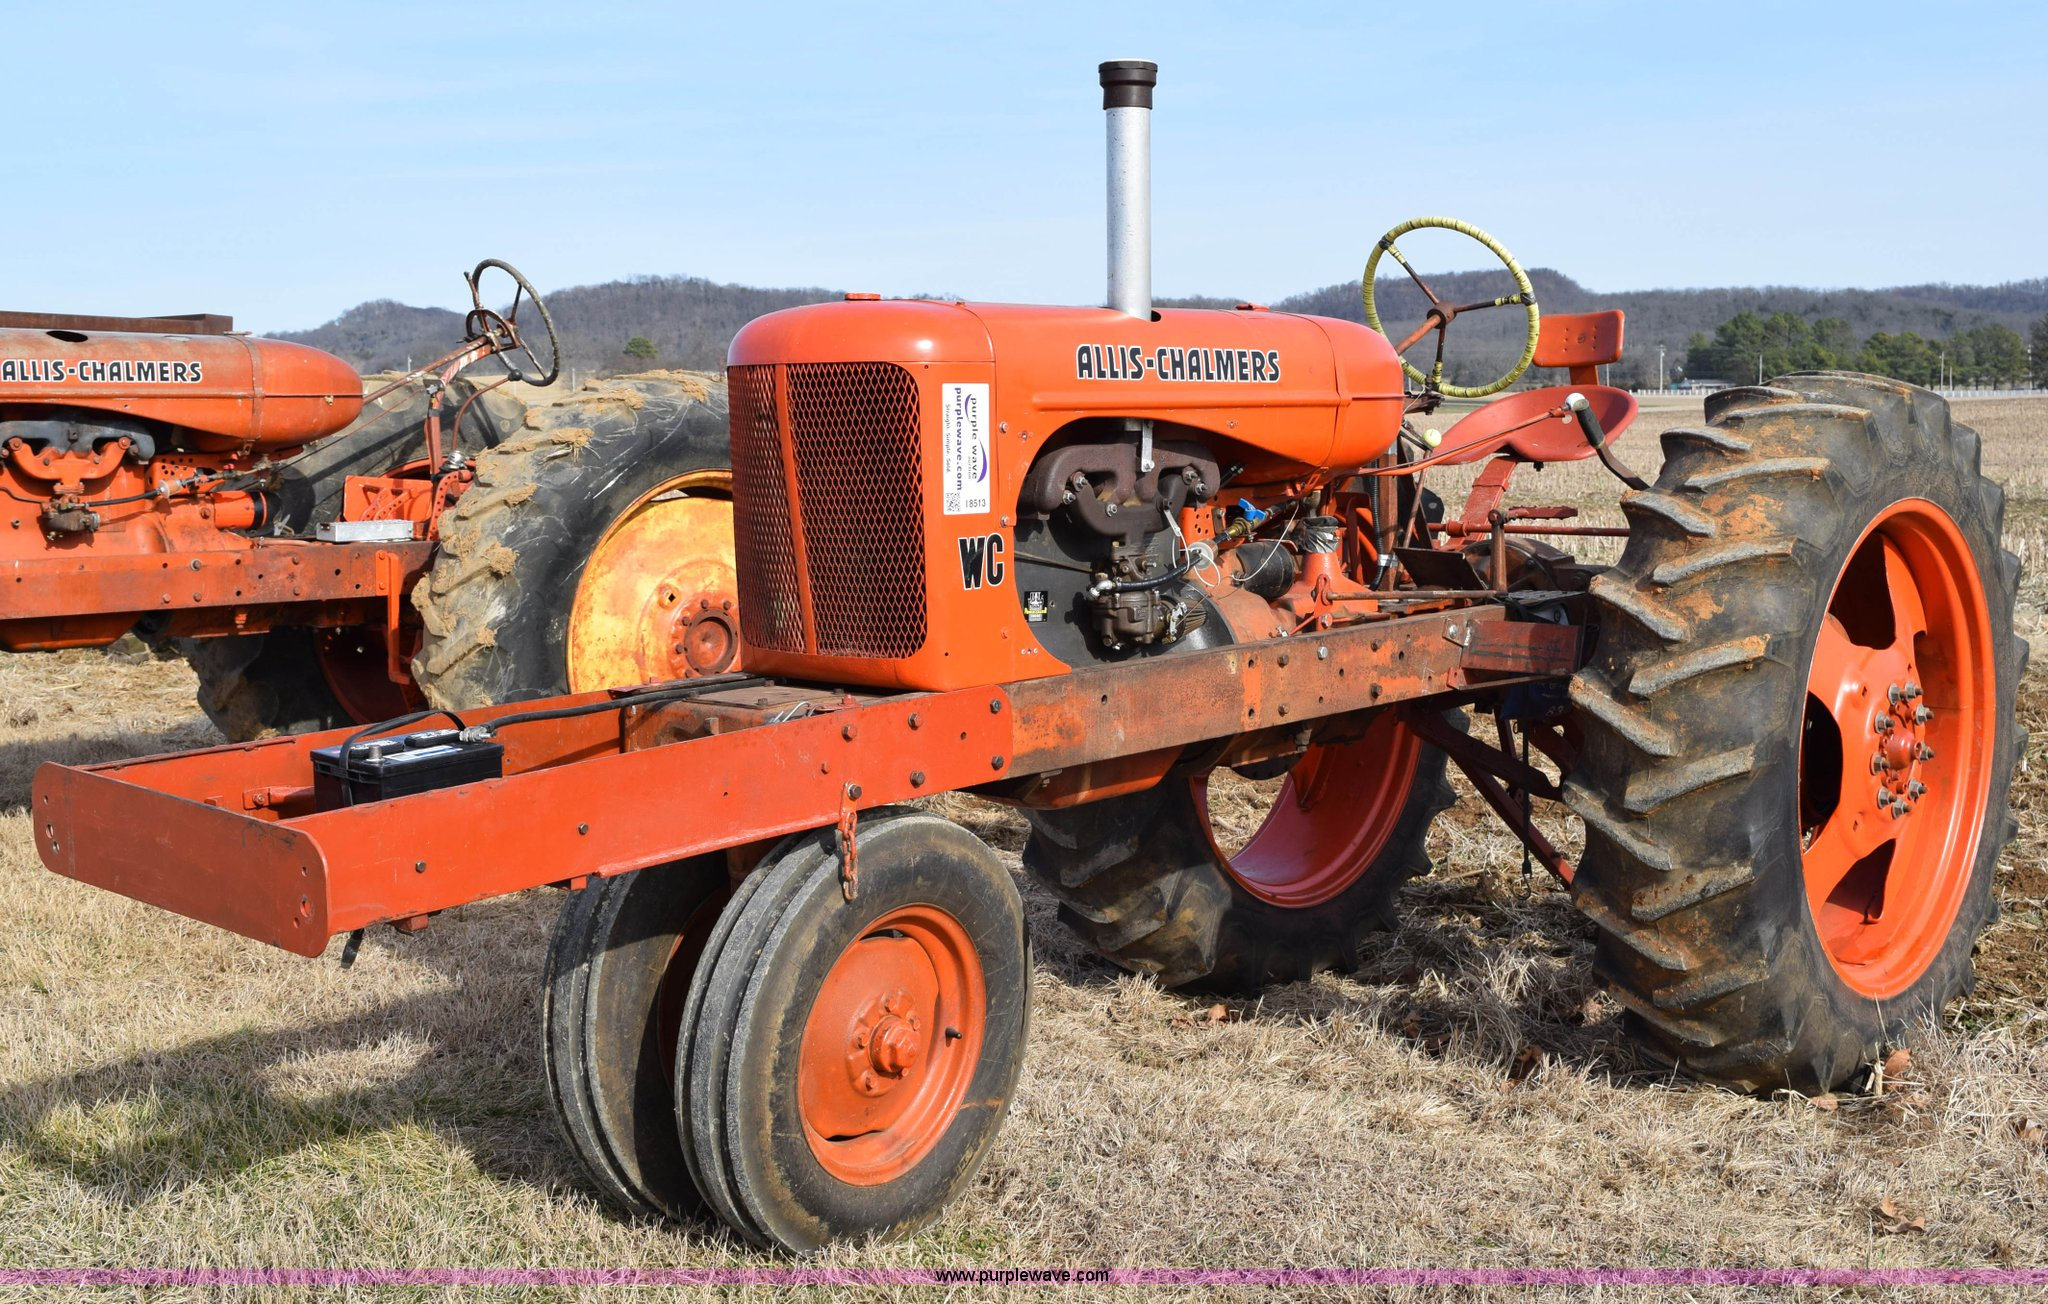 Allis Chalmers Wc Parts Craigslist – Wonderful Image Gallery